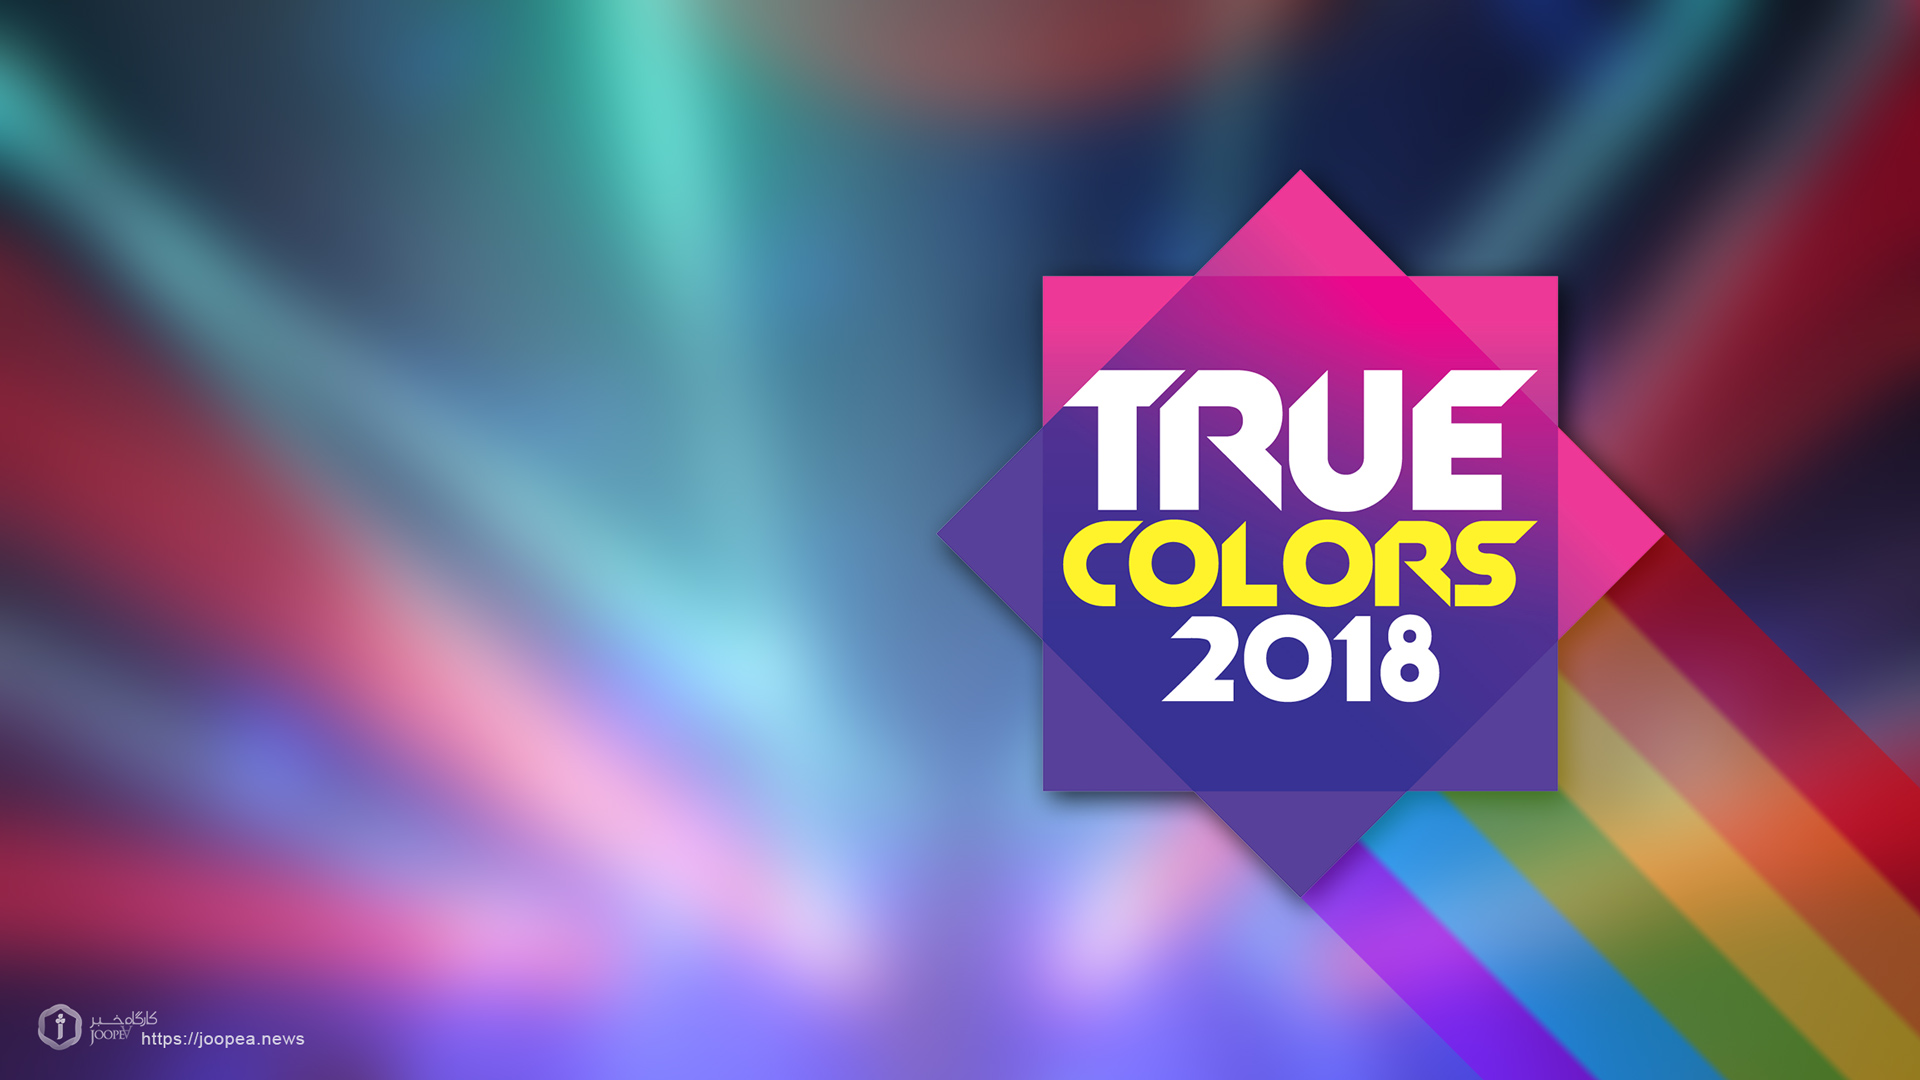 True Colors 2018